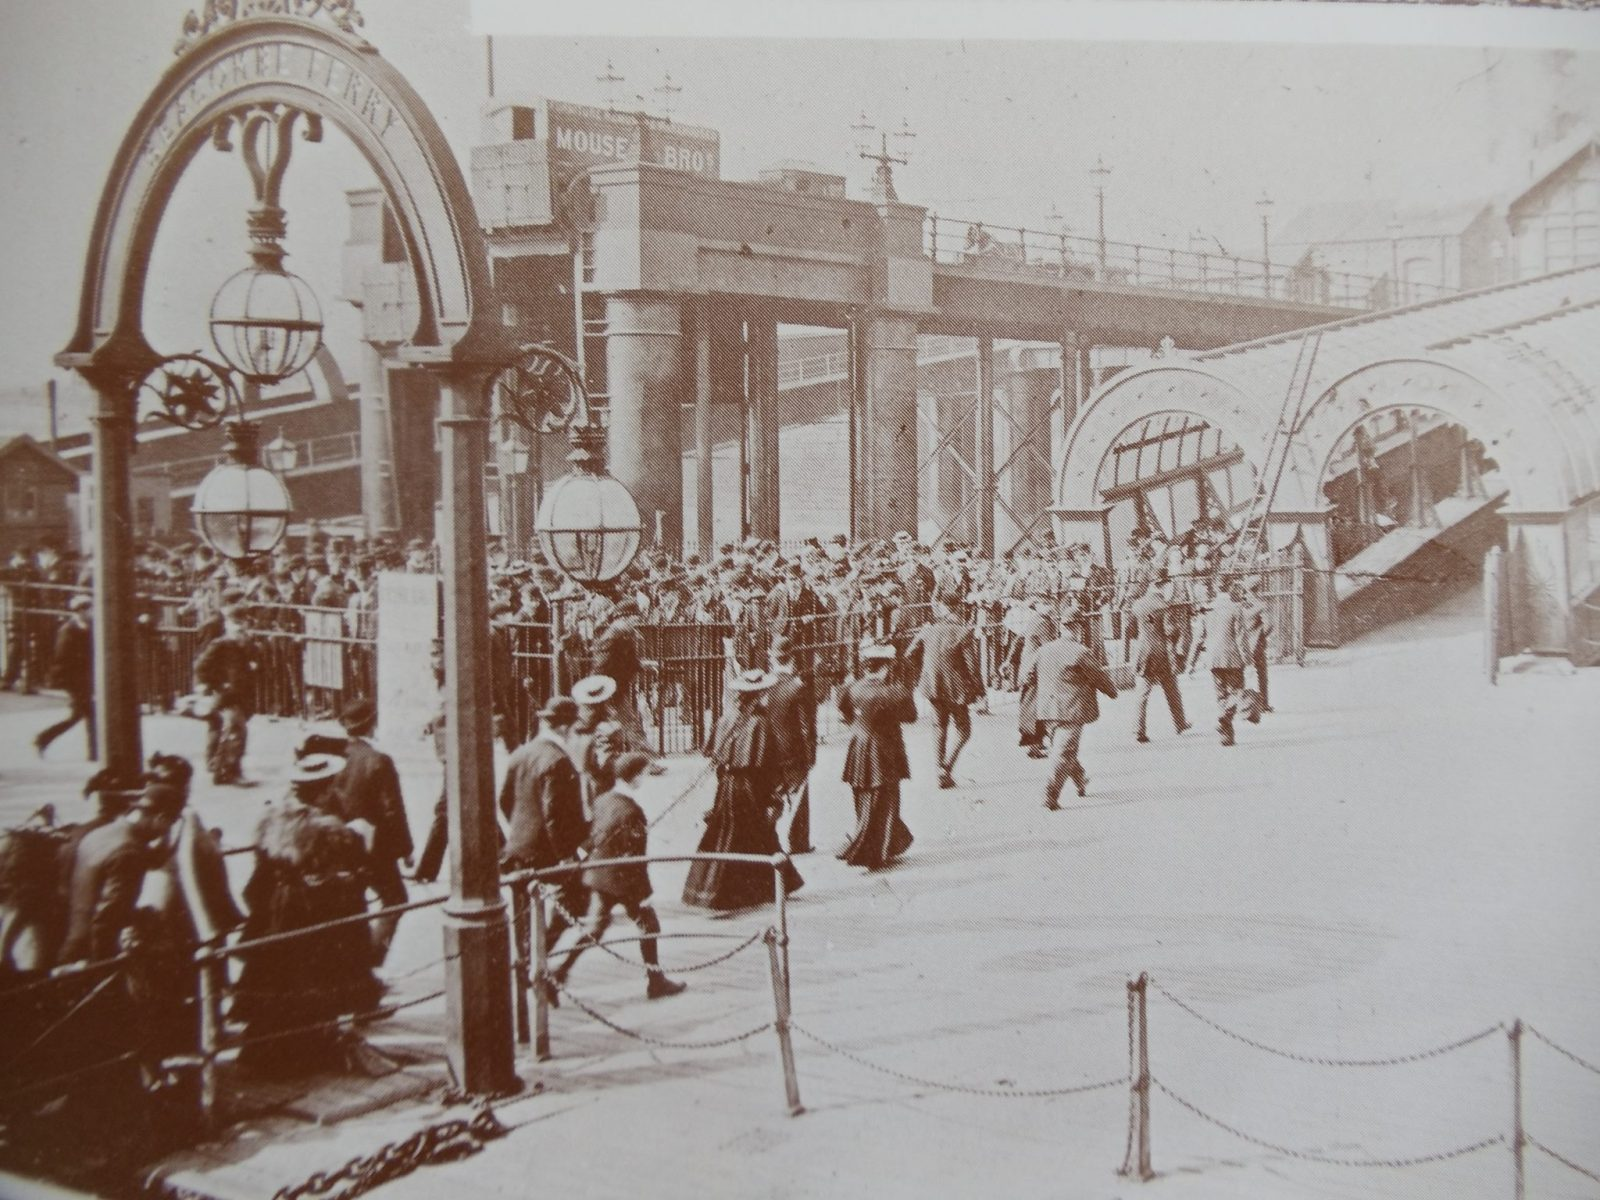 Ferry passengers disembarking at Seacombe in 1900